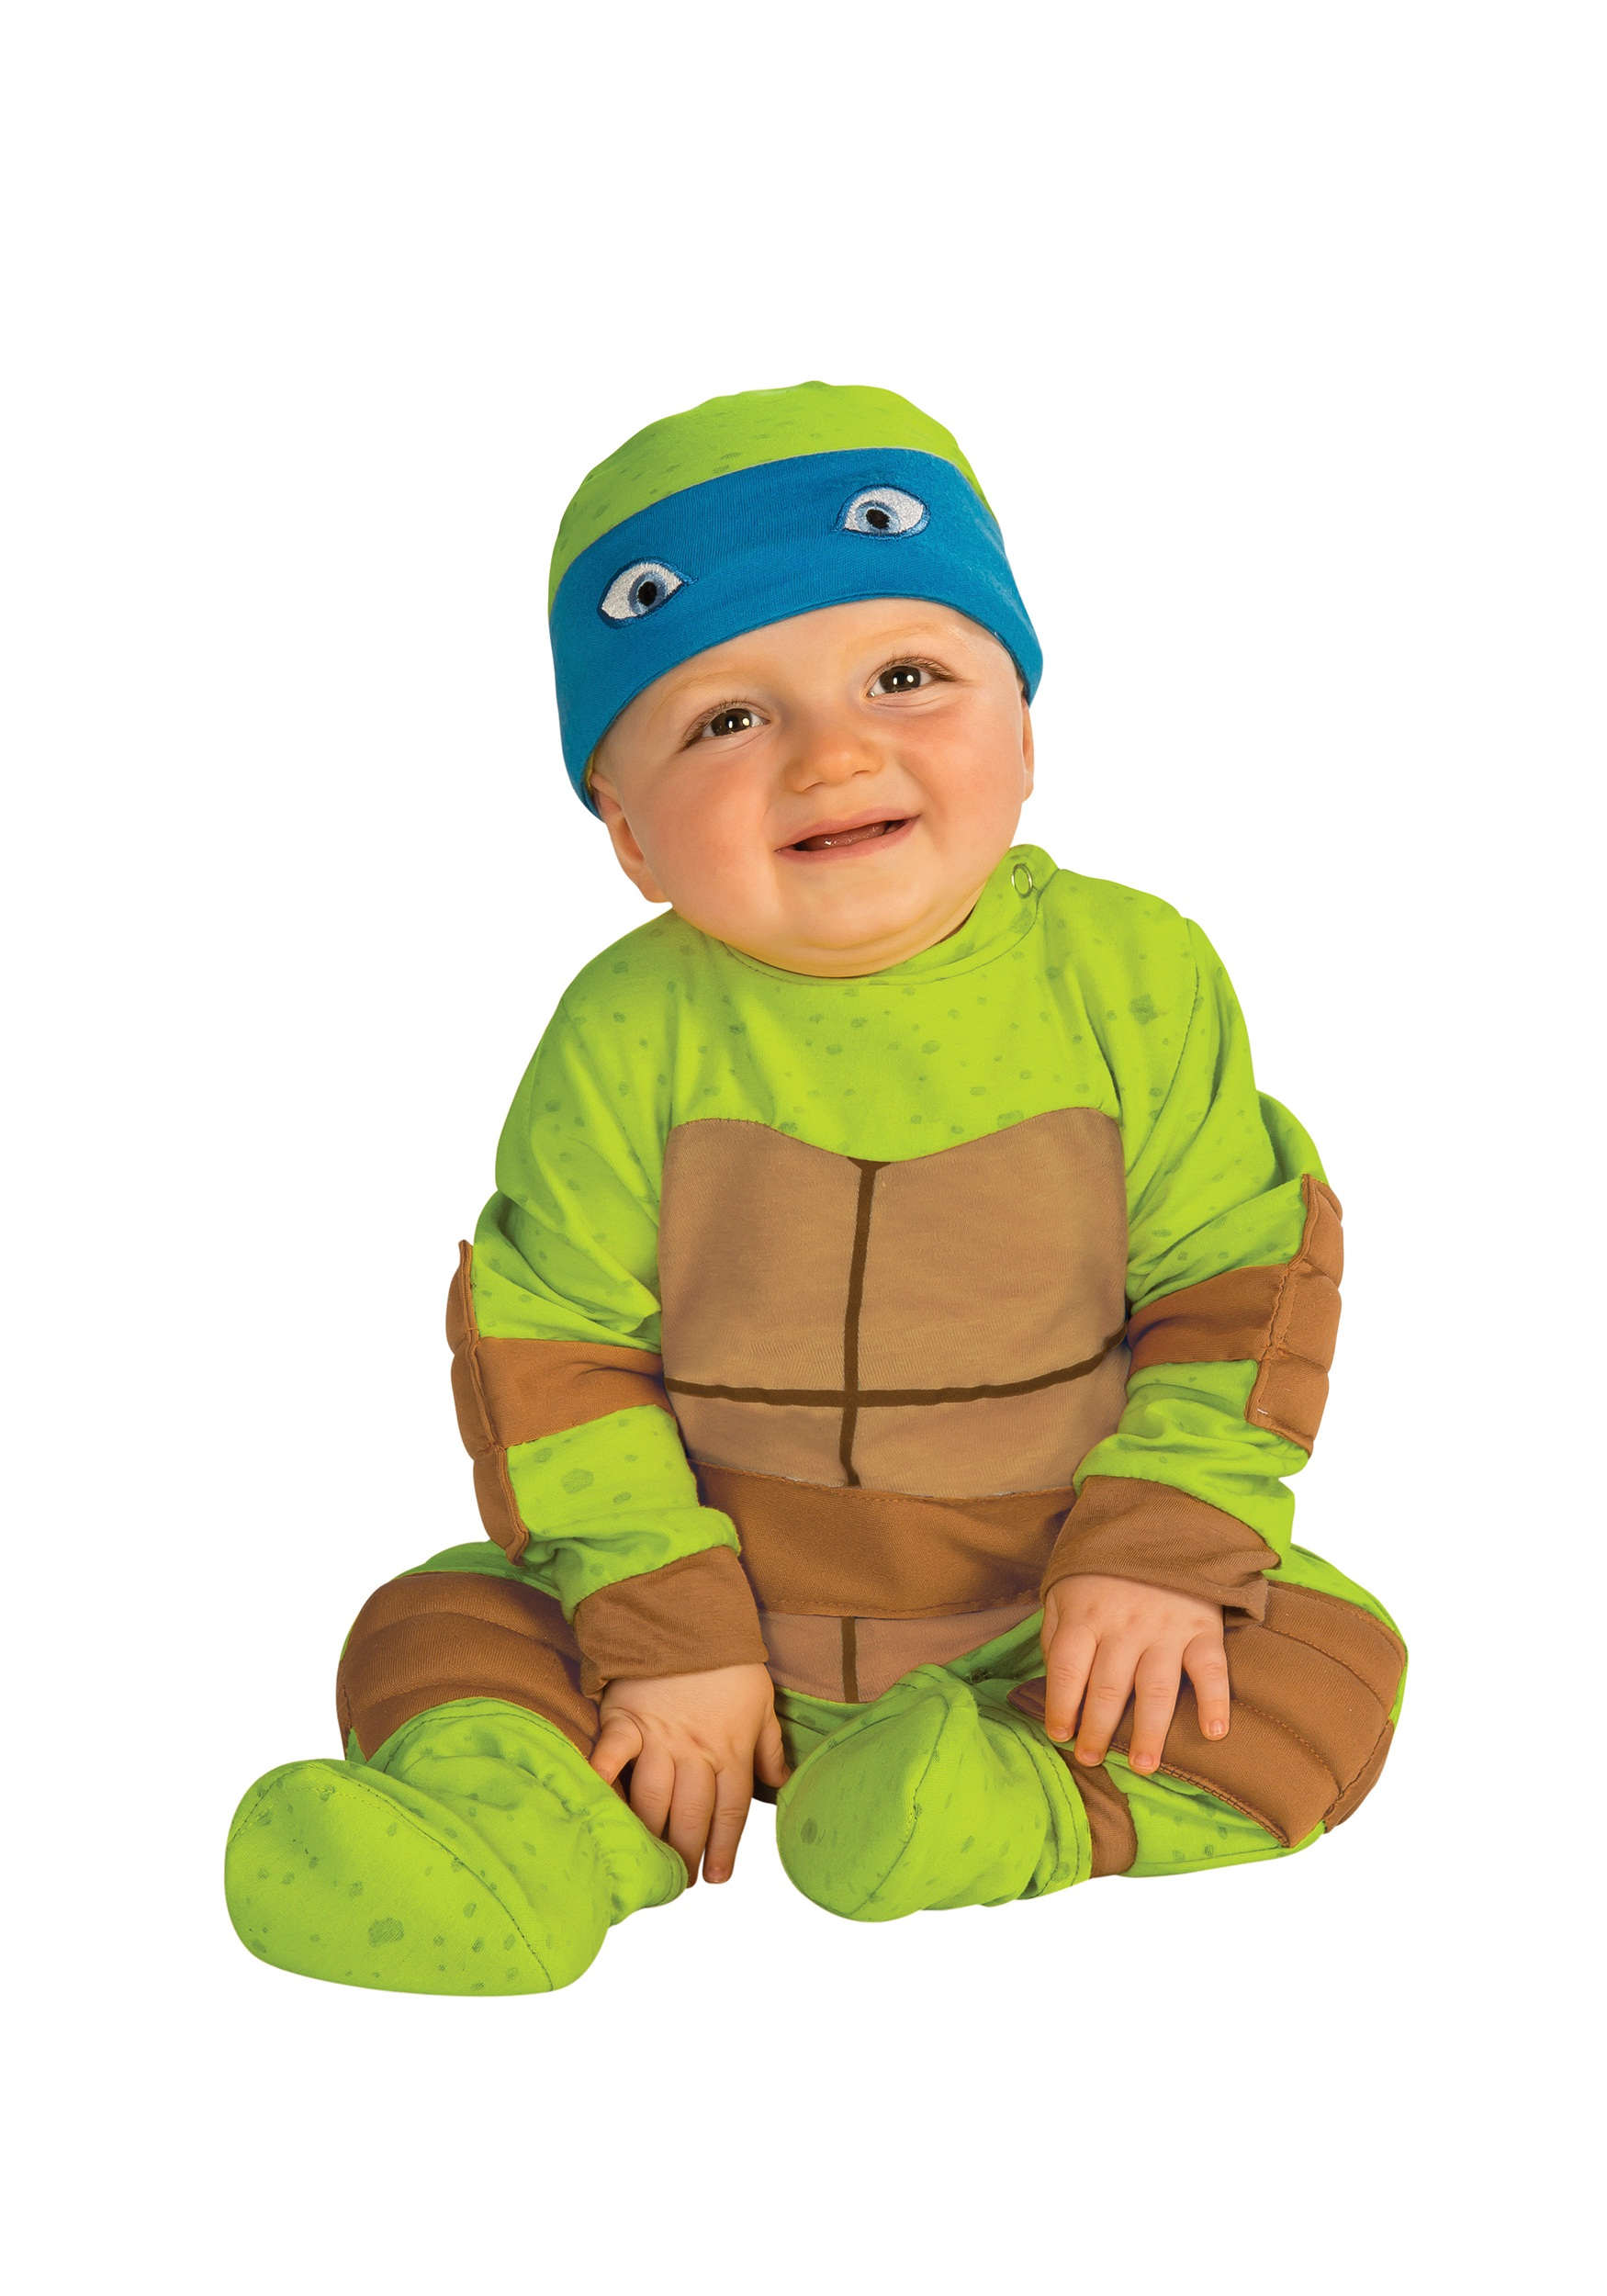 Teenage Mutant Ninja Turtles Costumes - HalloweenCostumes.com